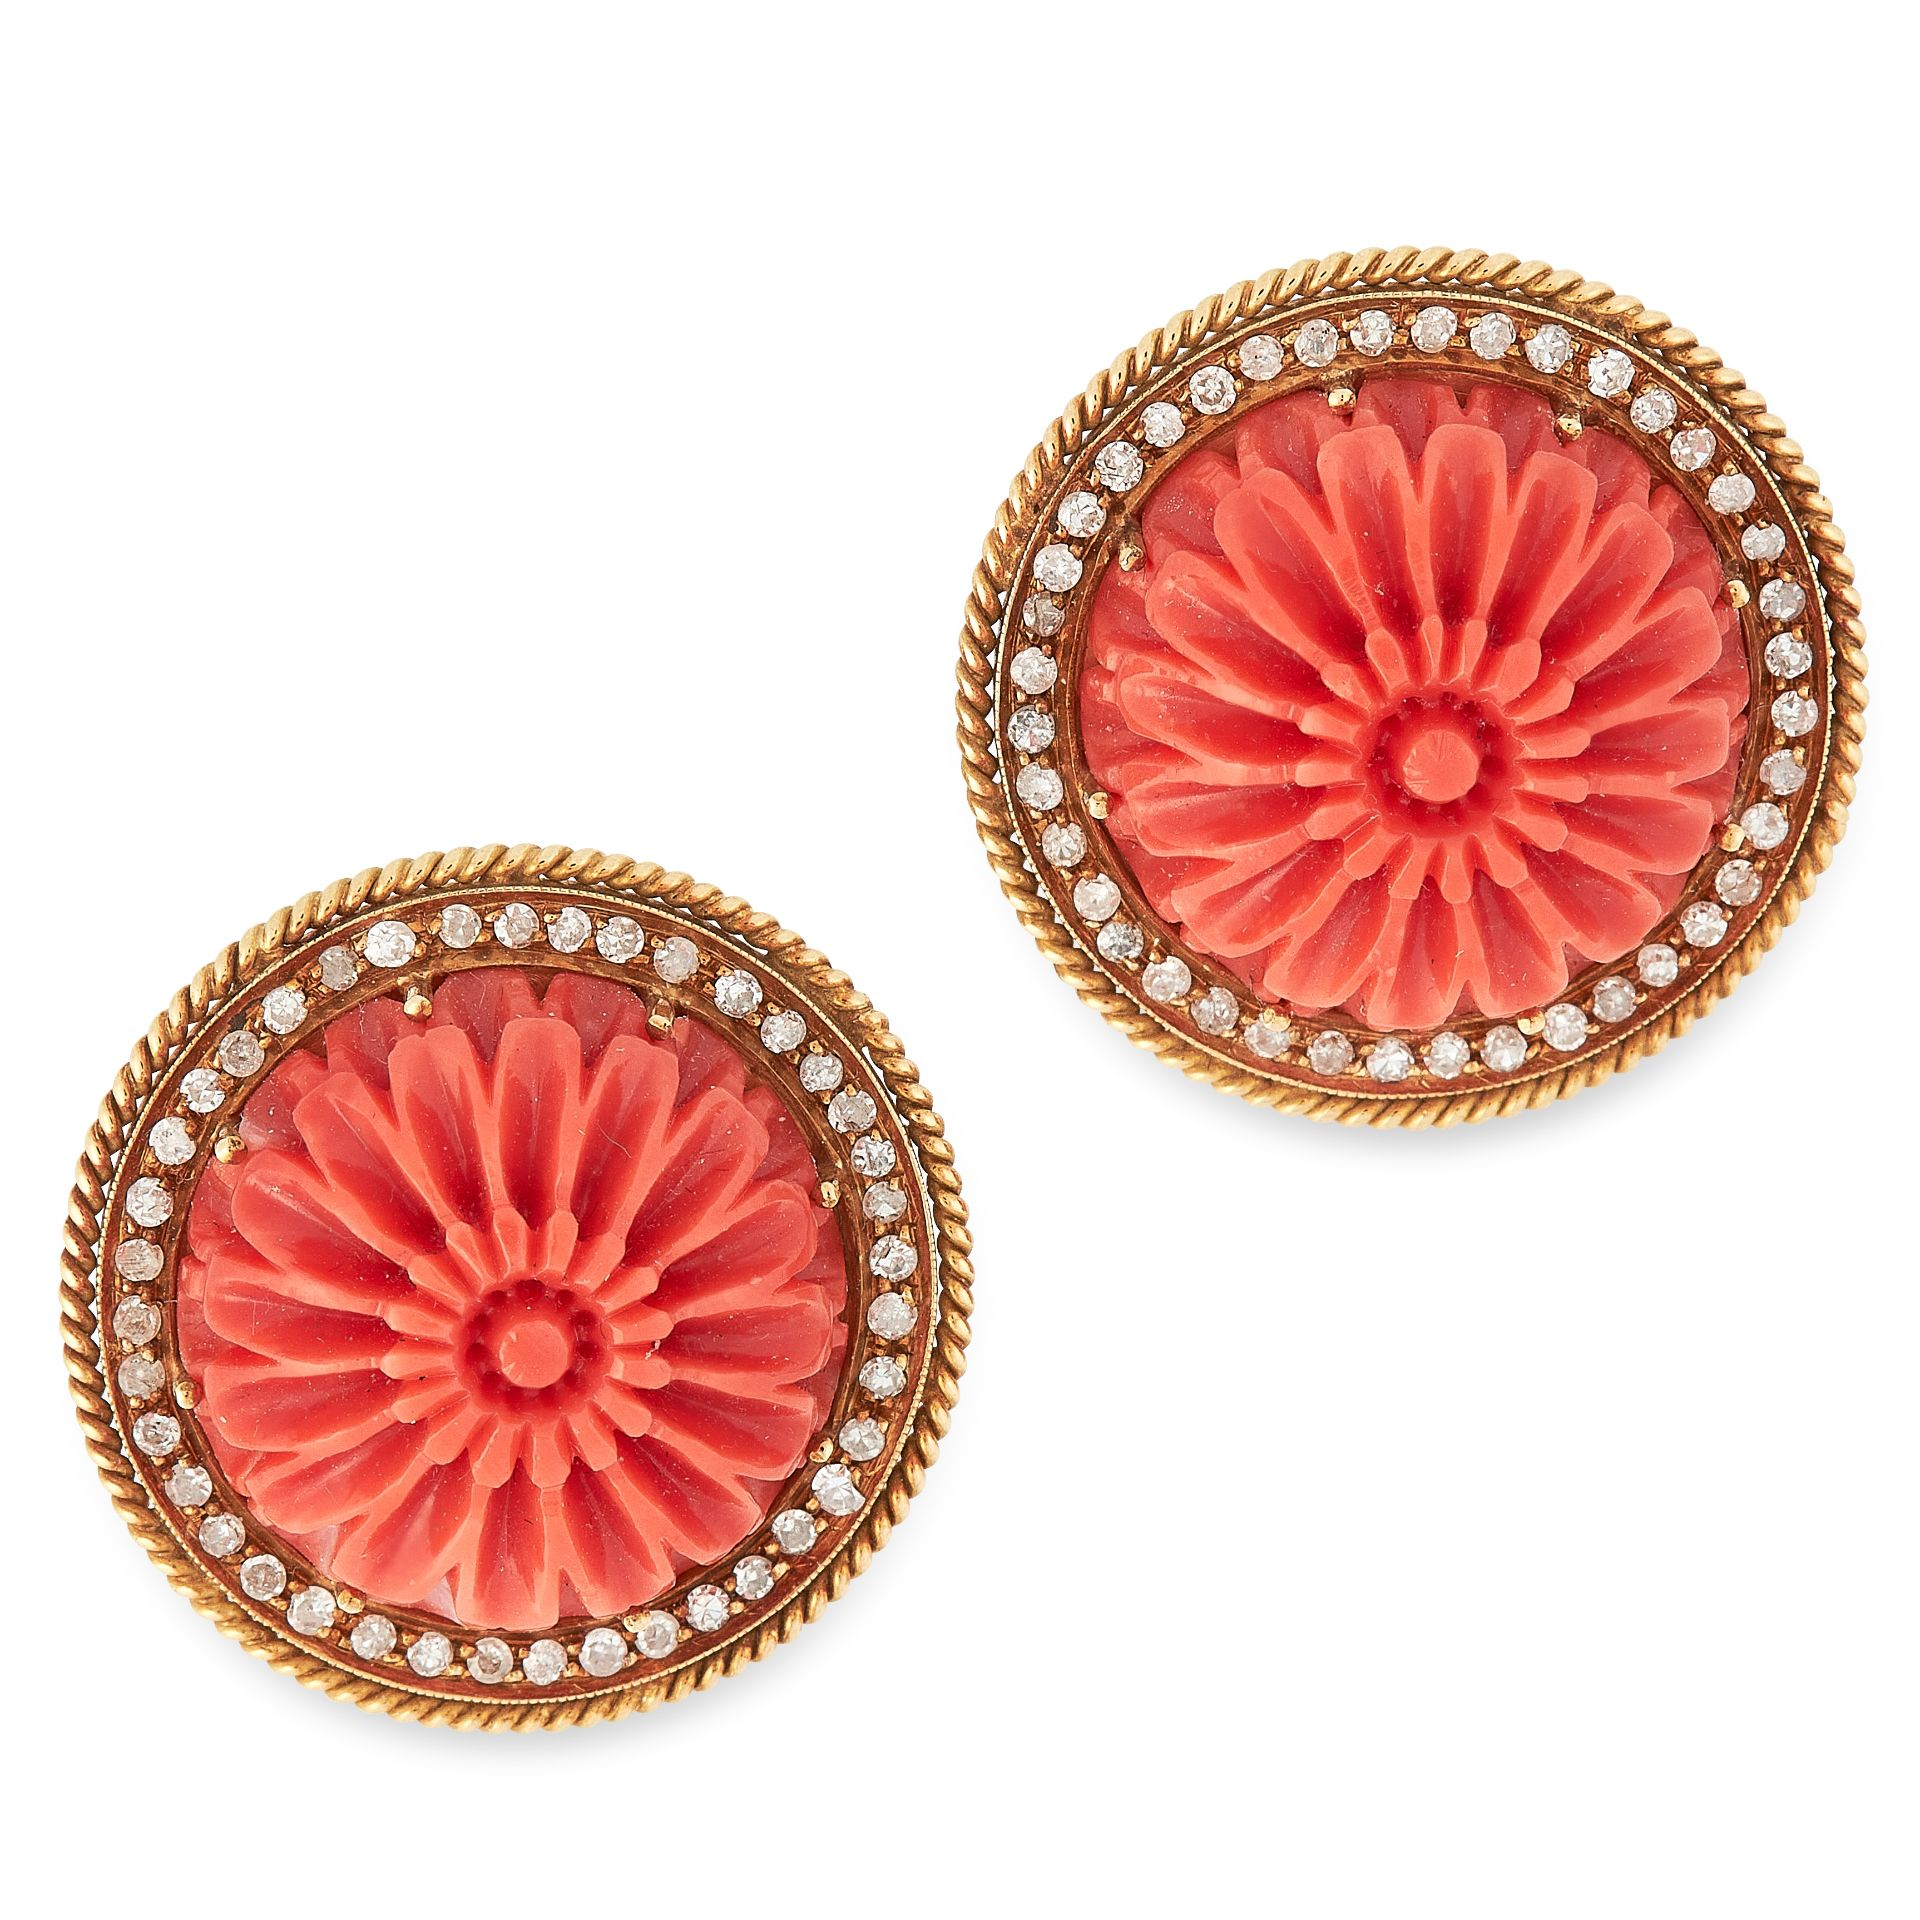 Los 13 - A PAIR OF CARVED CORAL AND DIAMOND EARRINGS in 18ct yellow gold, each set with a circular piece of